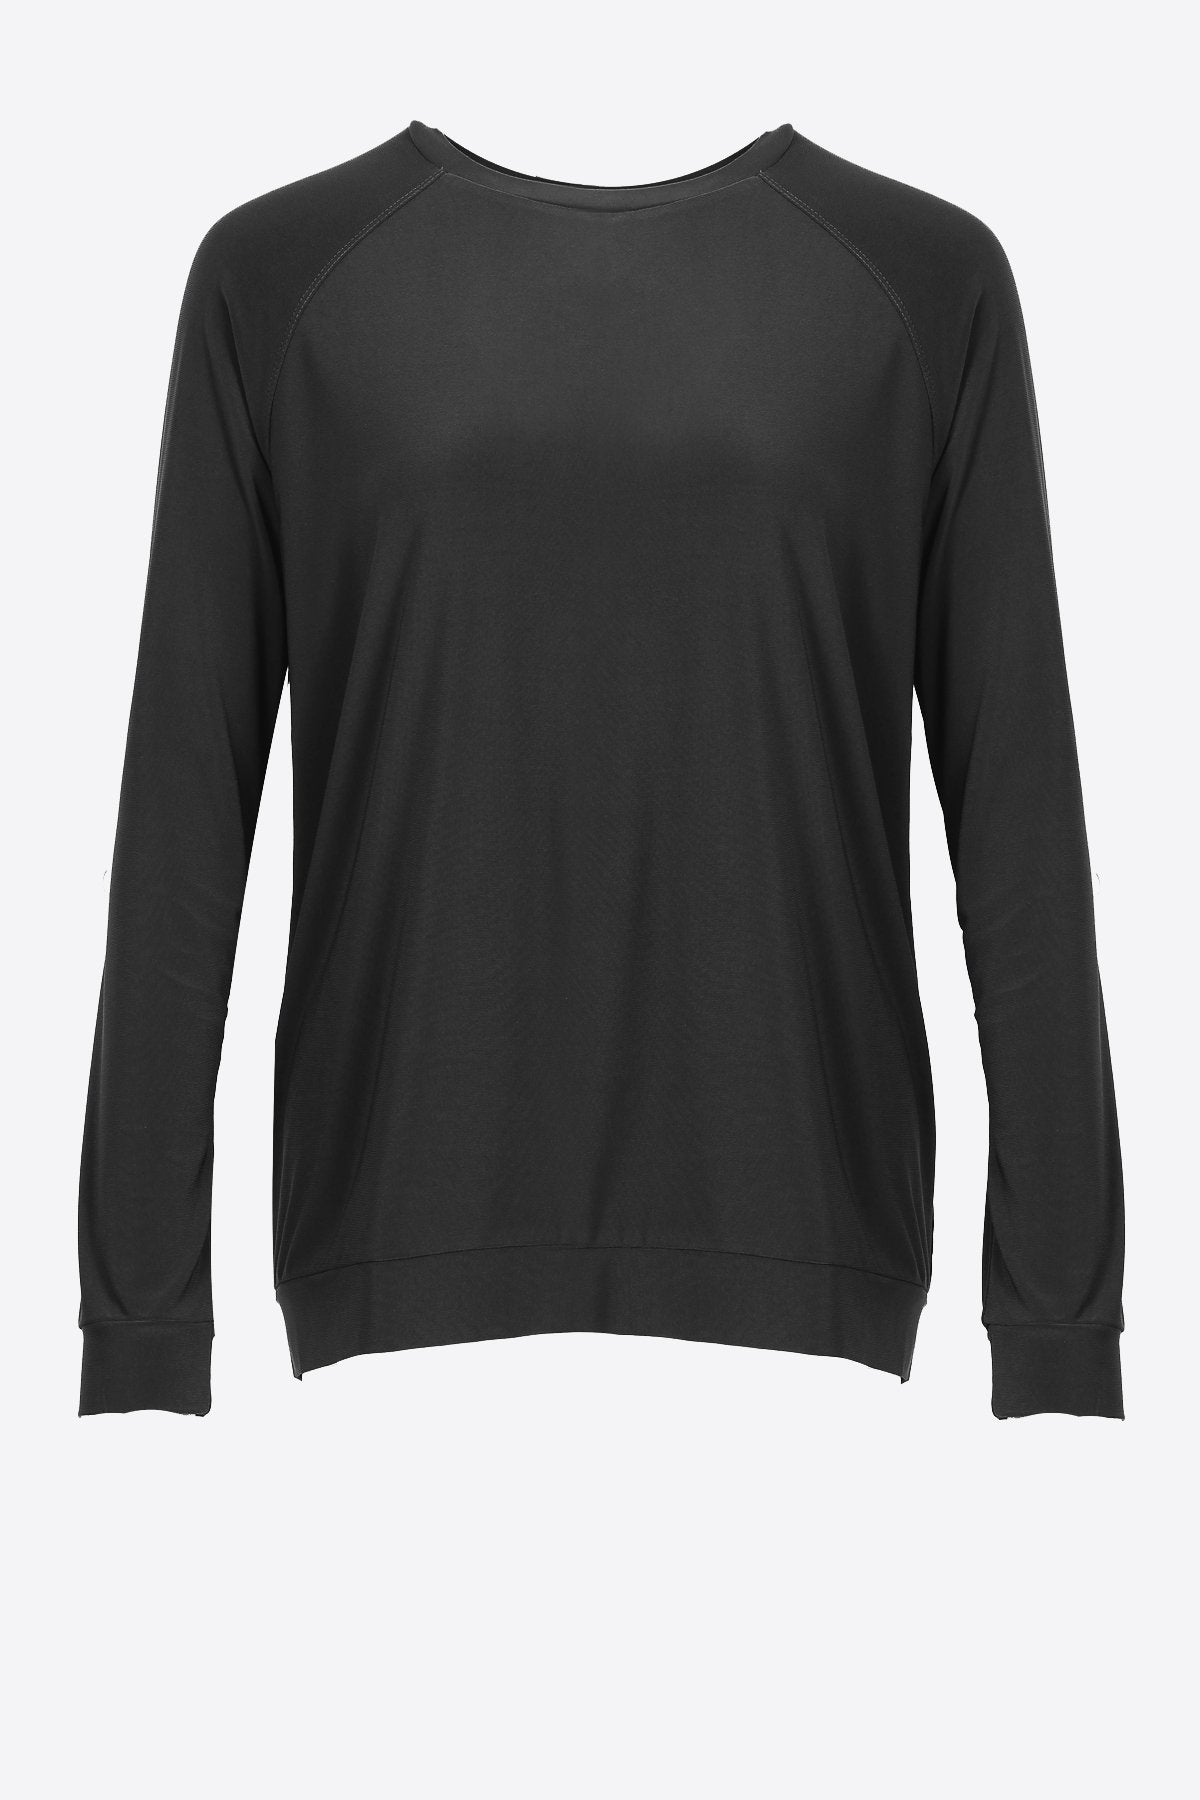 Crew Neck Long Sleeve Casual Top (Plus Size) - Women's Clothing -ROSARINI